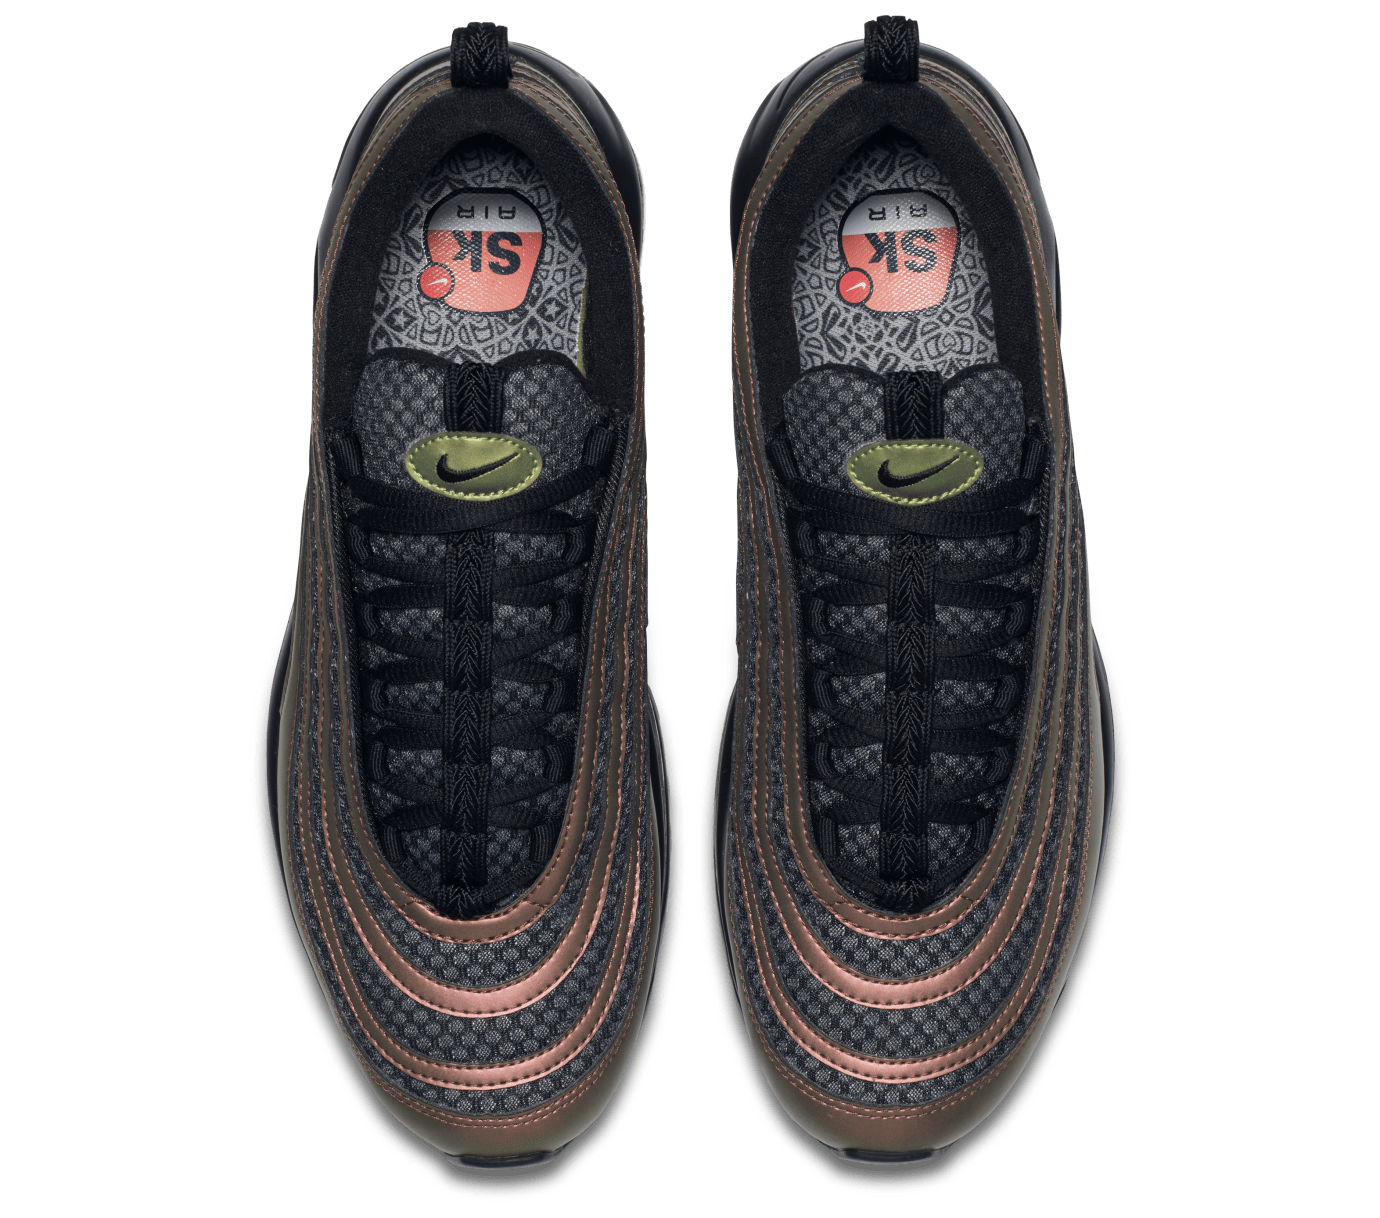 Skepta Nike Air Max 97 AJ1988-900 Top